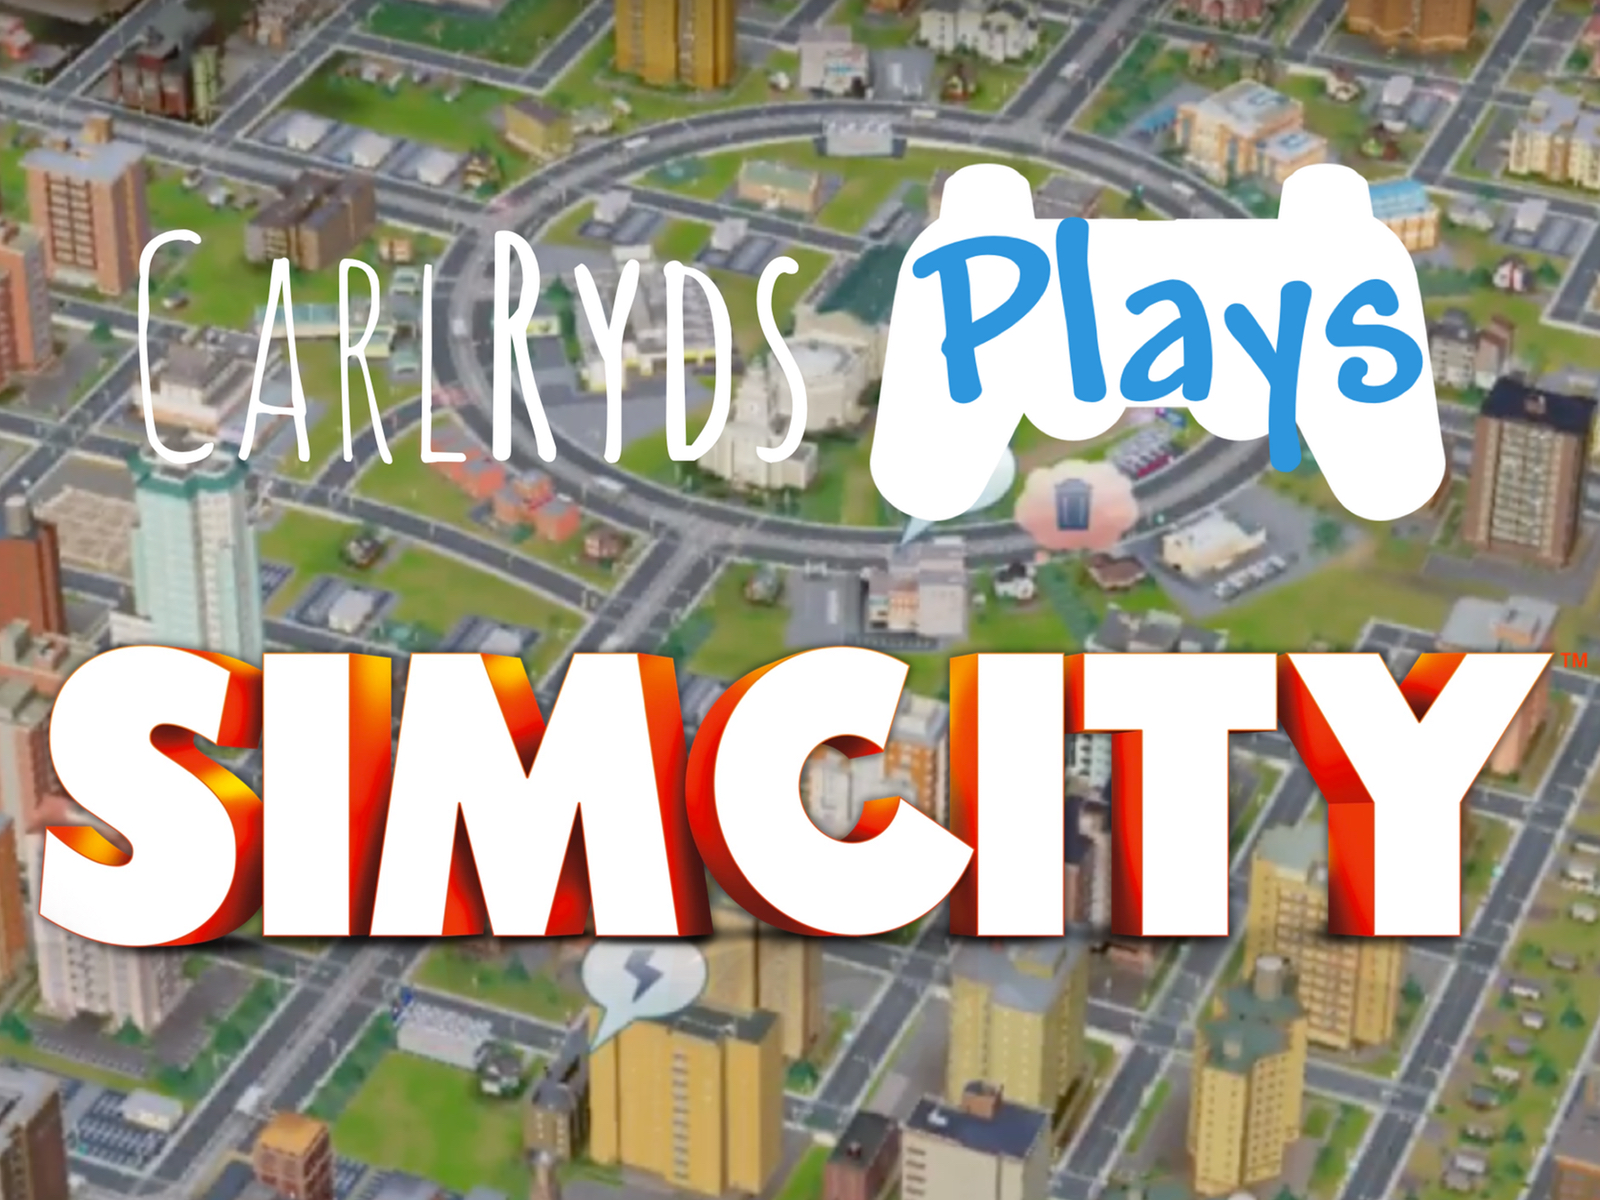 CarlRyds plays SimCity